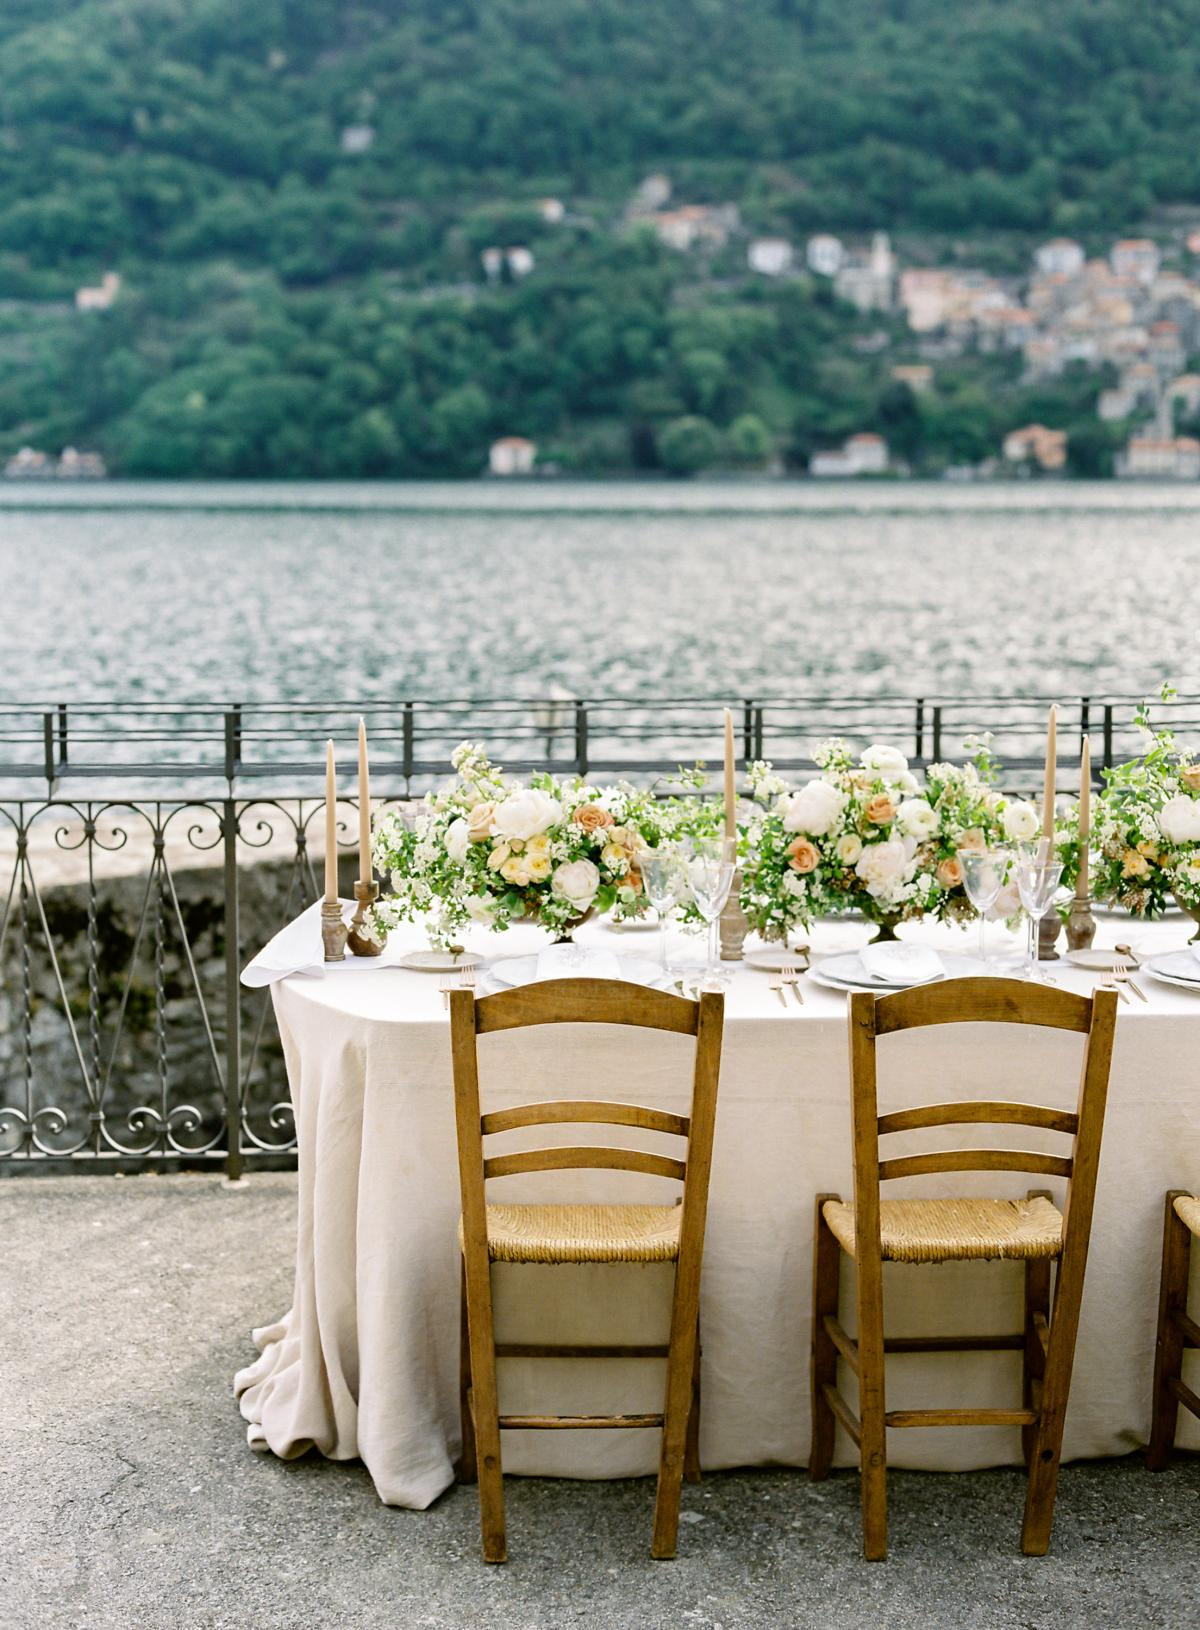 Lake Como Villa Del Balbianello Wedding Omalley Photographers 0026